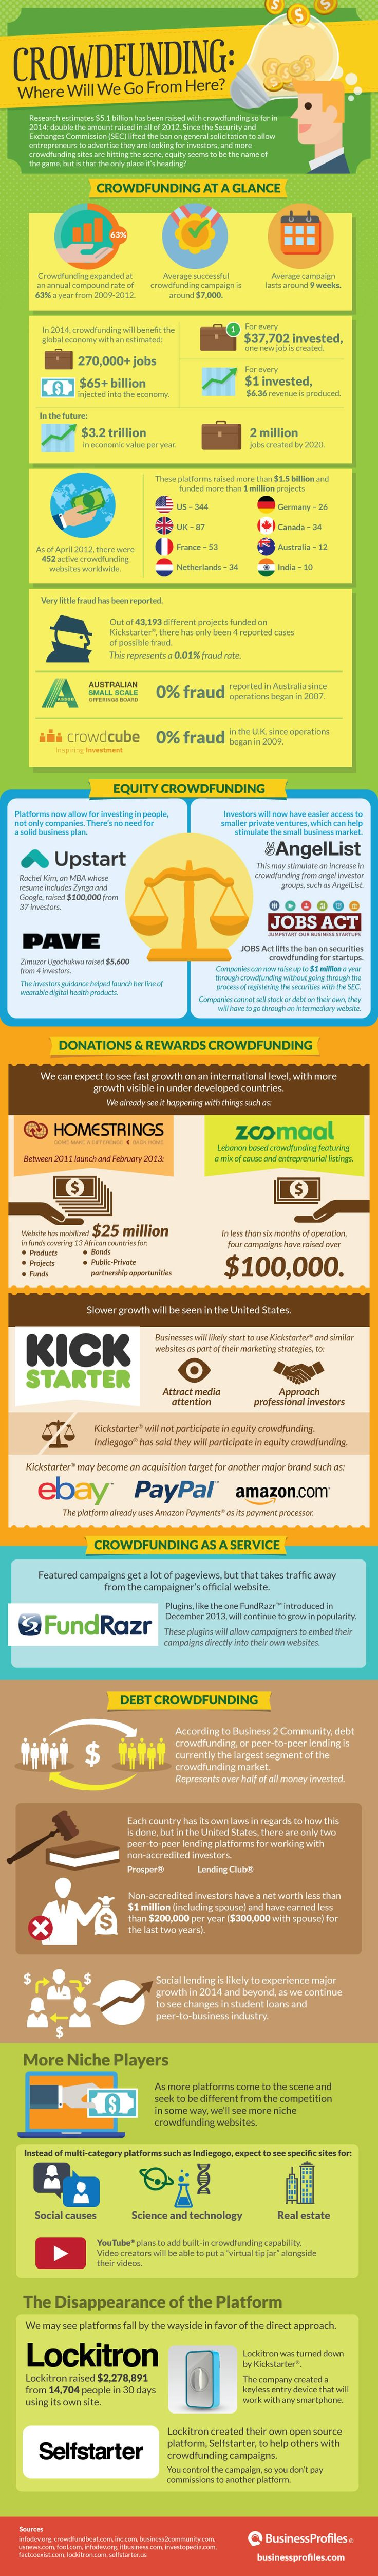 Crowdfunding: Where Will We Go From Here? #infographic #Crowdfunding #Business #SmallBusiness #startup